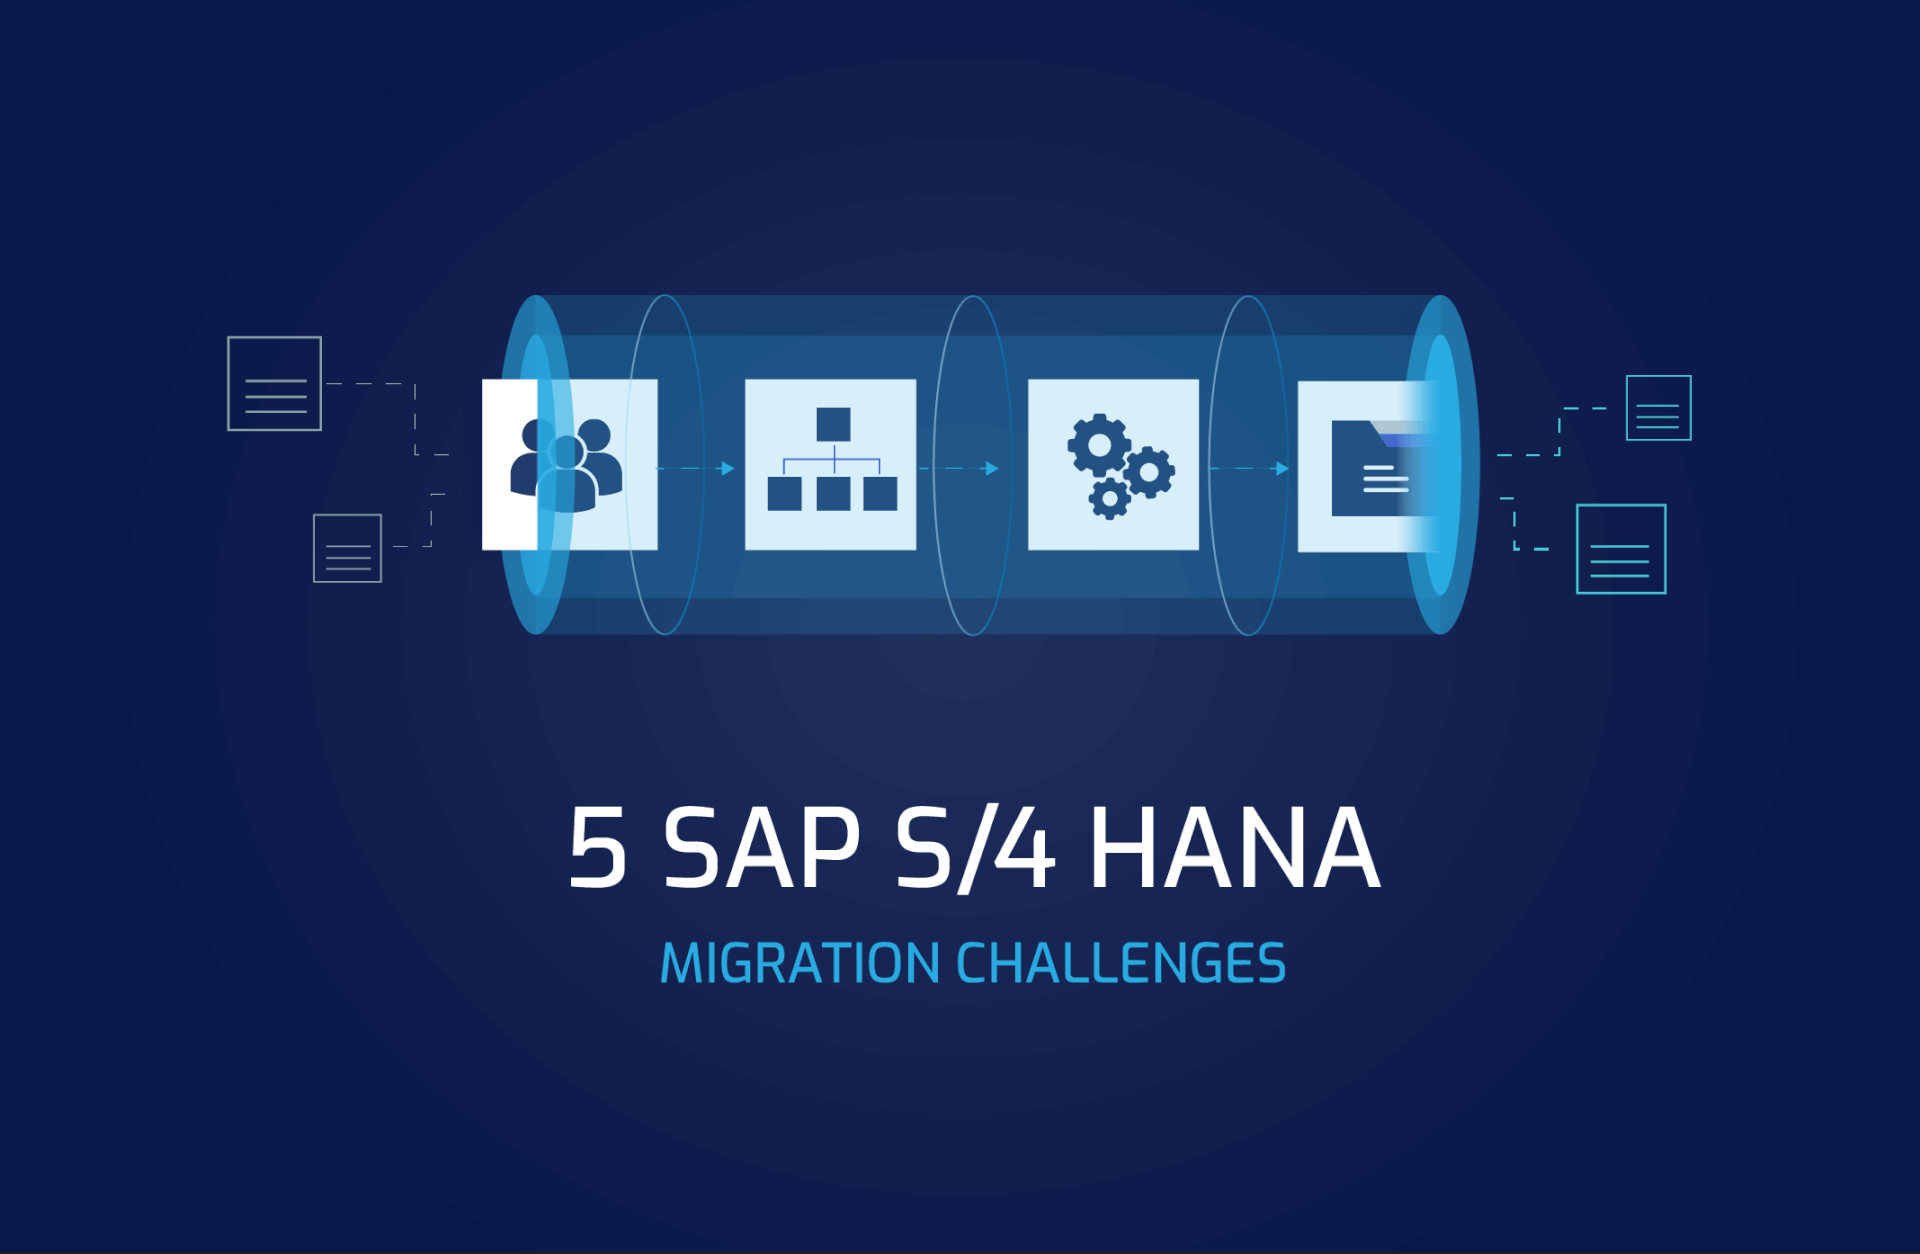 5 SAP S4 HANA Data Migration Challenges for the Oil, Gas and Energy Industry